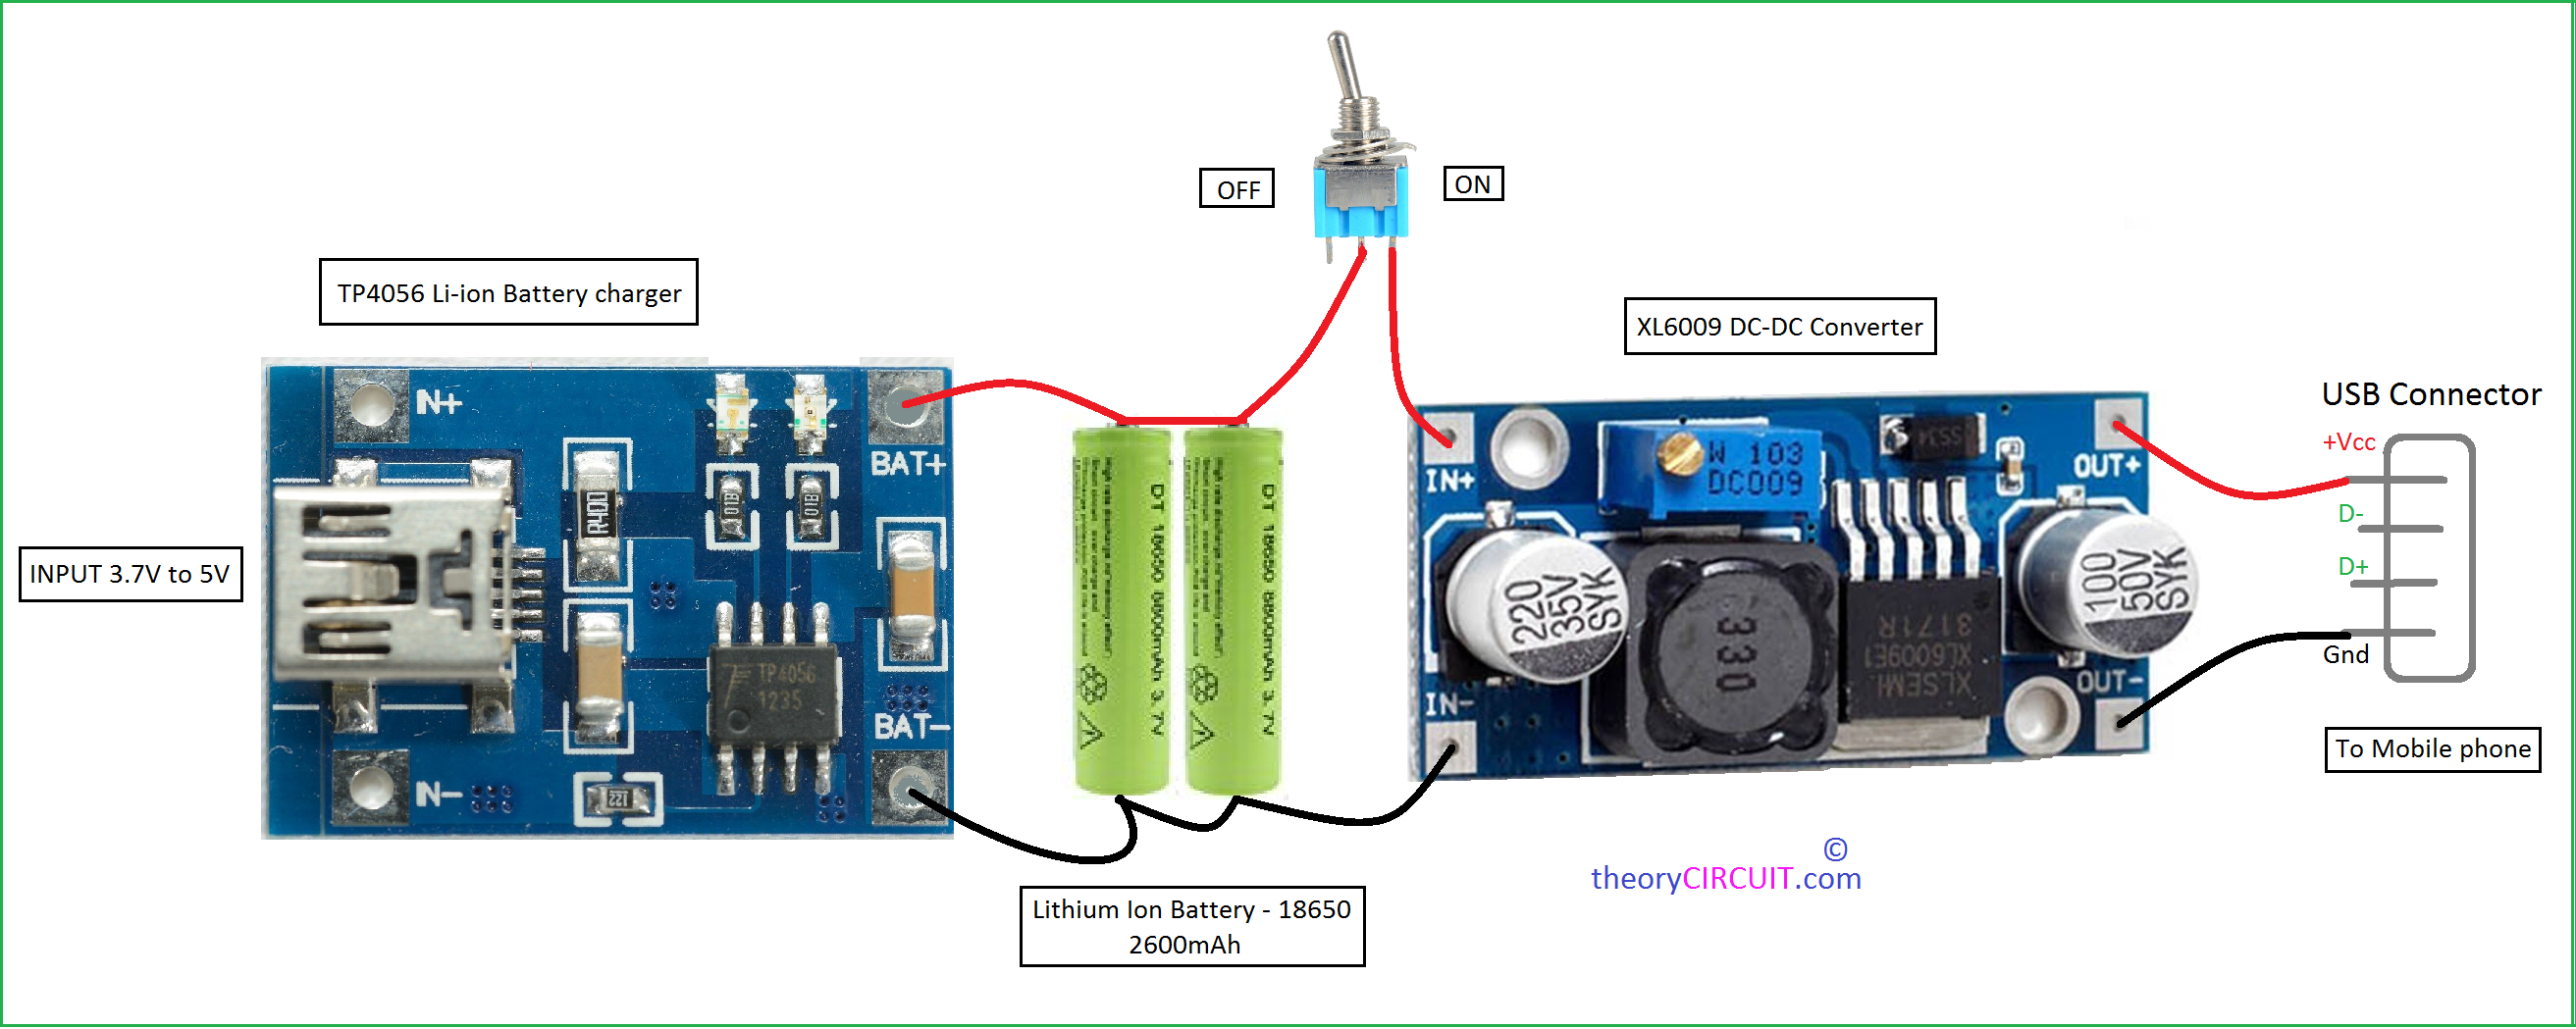 Power Bank Circuit For Smartphones Lithium Ion Battery Pack Wiring Diagram